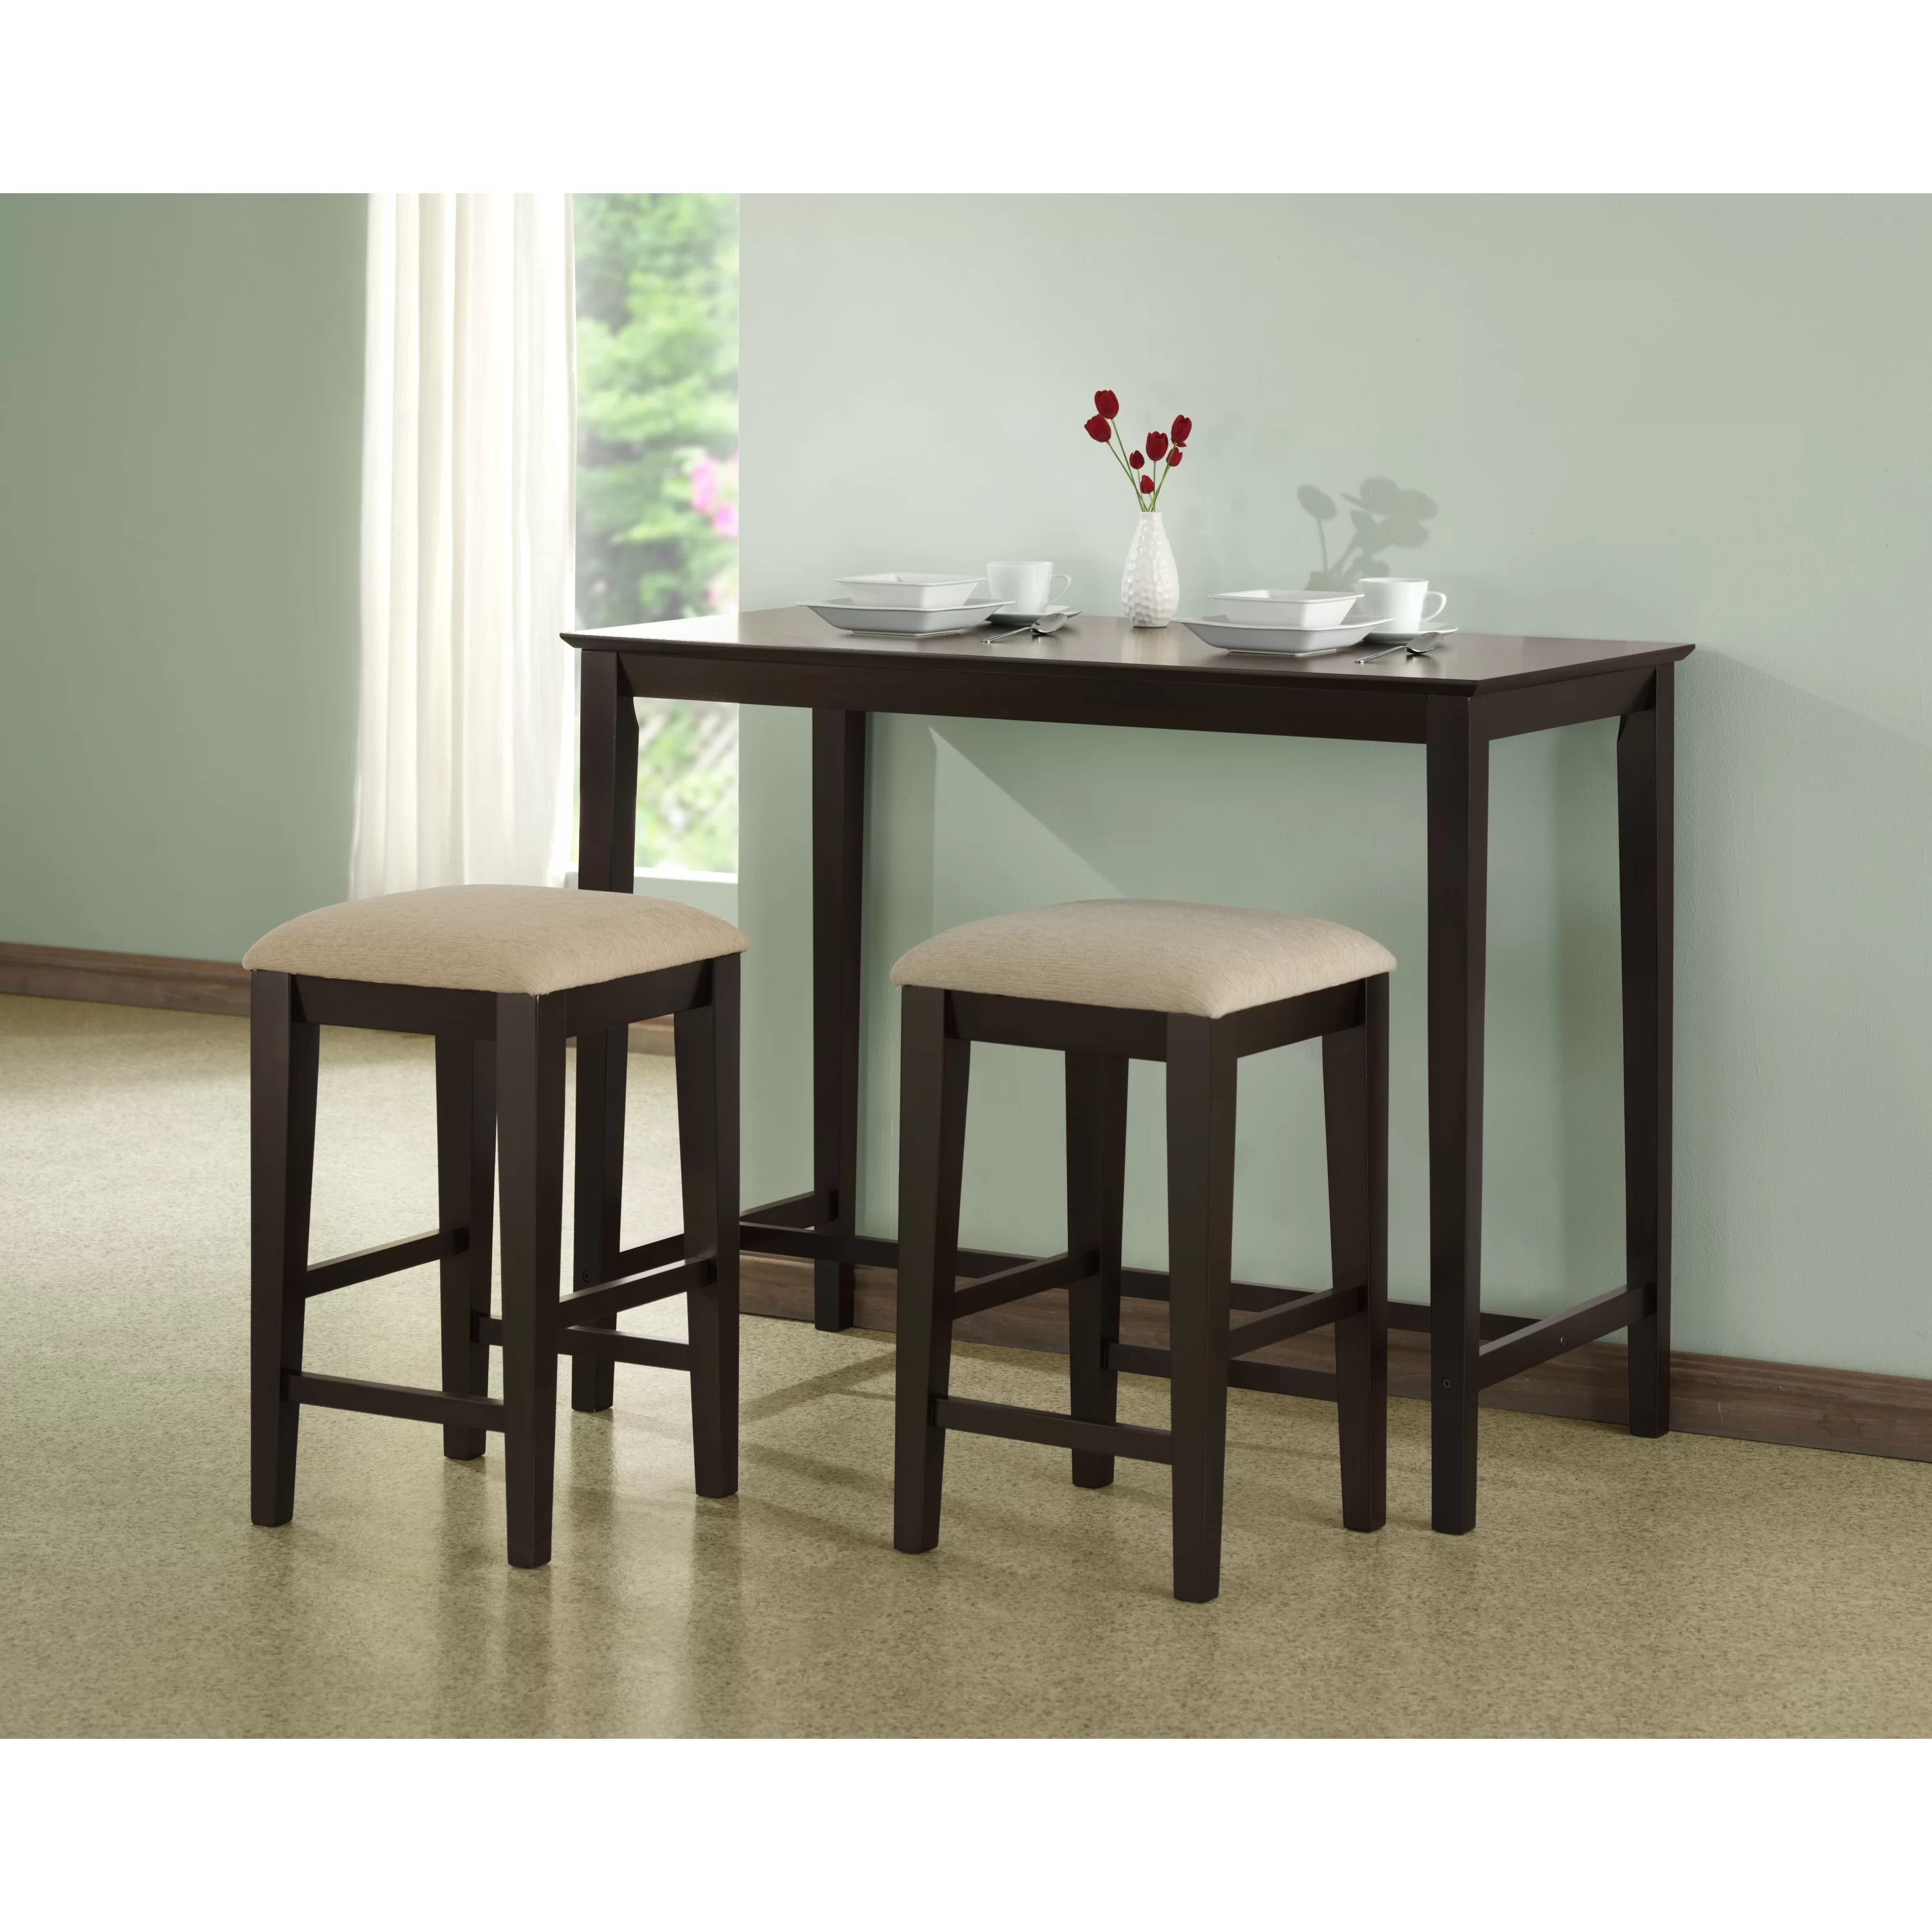 Monarch Specialties Inc Counter Height Kitchen Table MNQ counter height kitchen table Monarch Specialties Inc Counter Height Kitchen Table